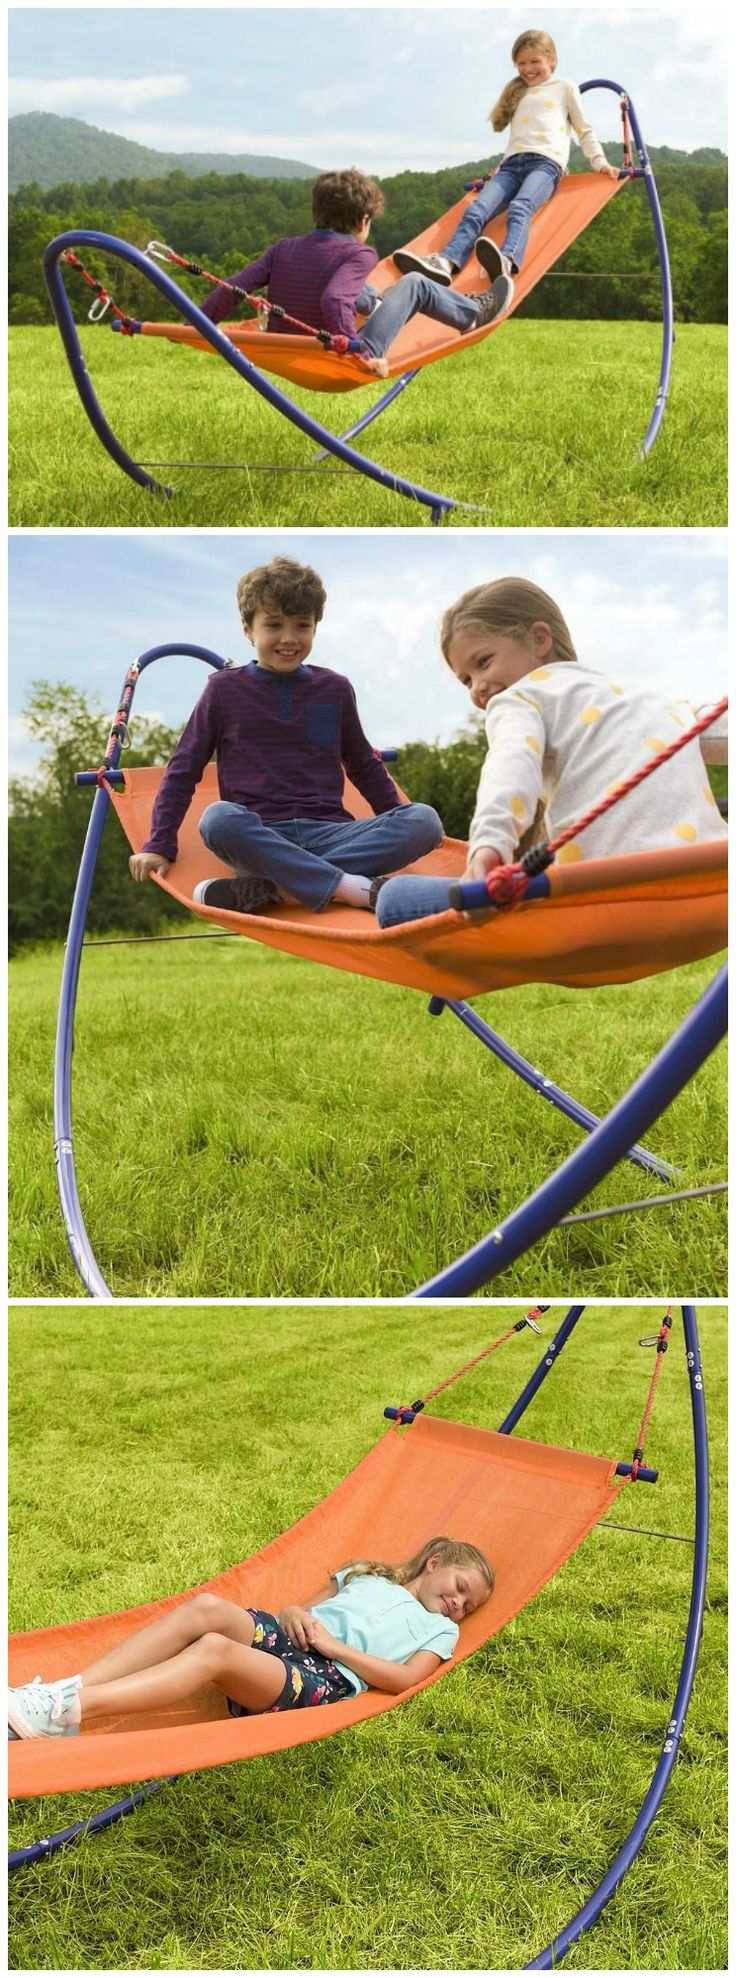 HearthSong Rockin' 2-in-1 Hammock rockin' good-time  hammock offers ample room for one or two kids to rock up and down or just laze back. #affiliate